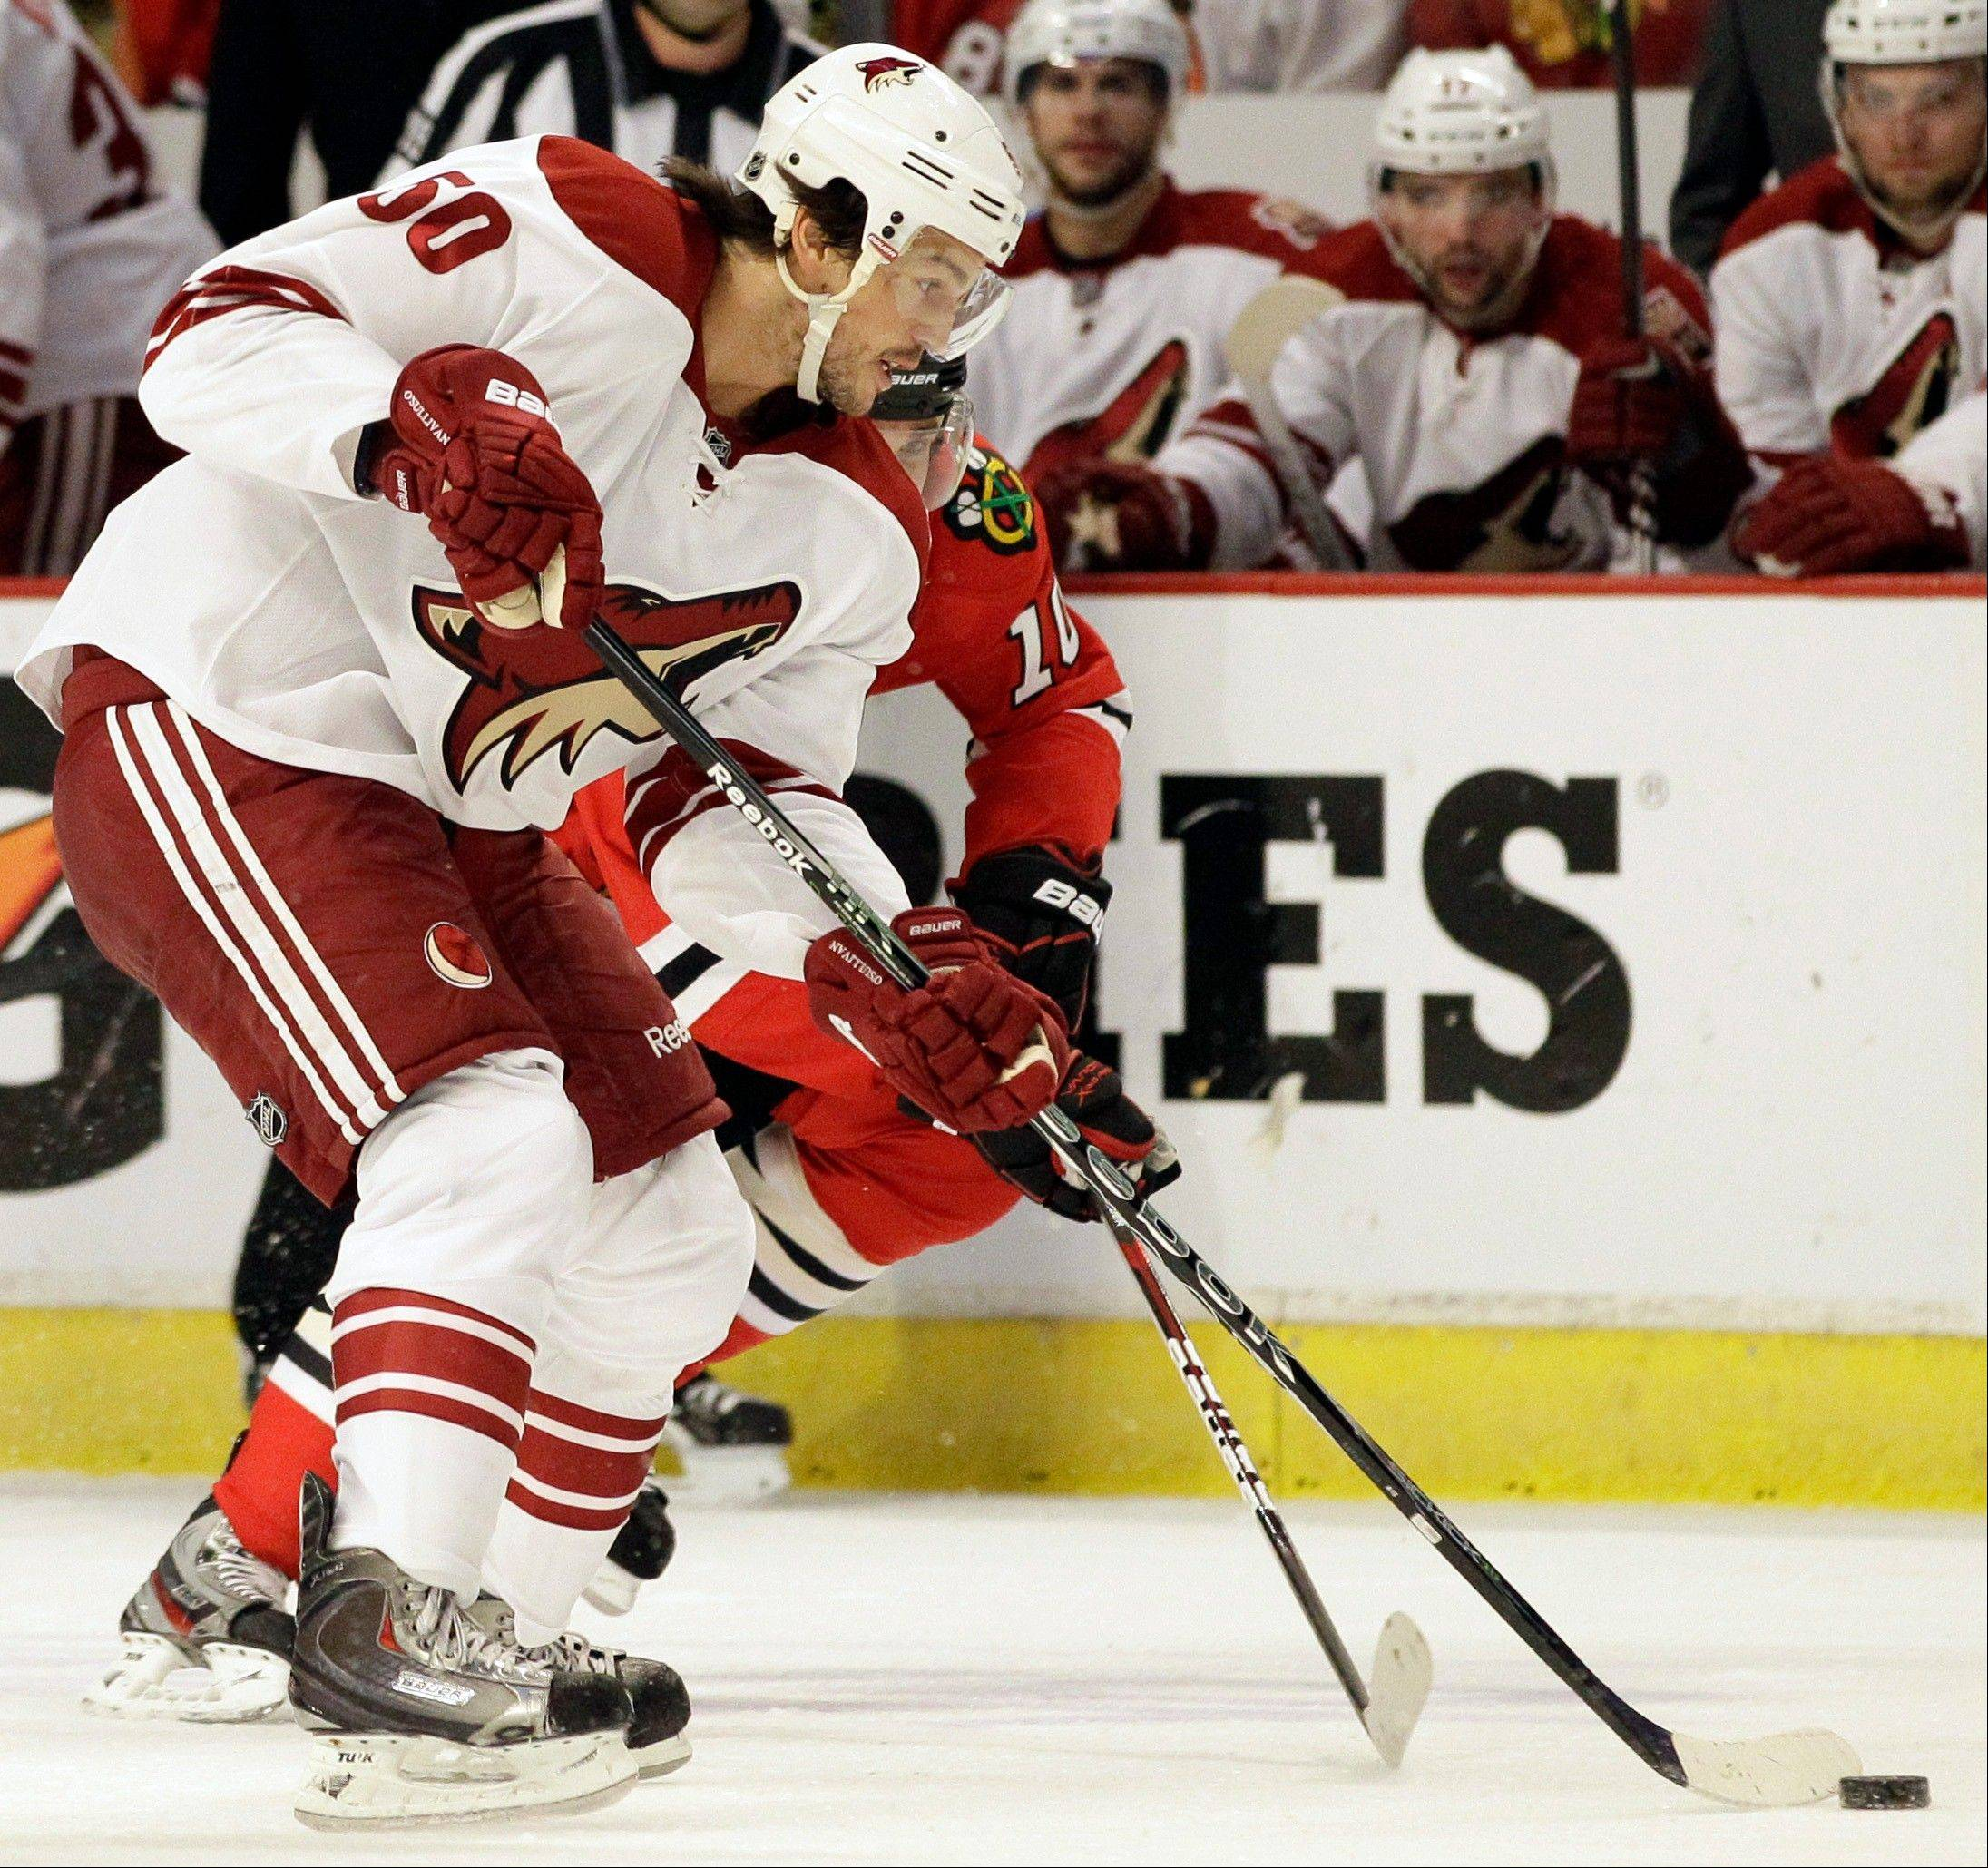 Phoenix Coyotes' Antoine Vermette (50) controls the puck against Chicago Blackhawks' Patrick Sharp (10) during the first period of Game 6 of an NHL hockey Stanley Cup first-round playoff series in Chicago, Monday, April 23, 2012.